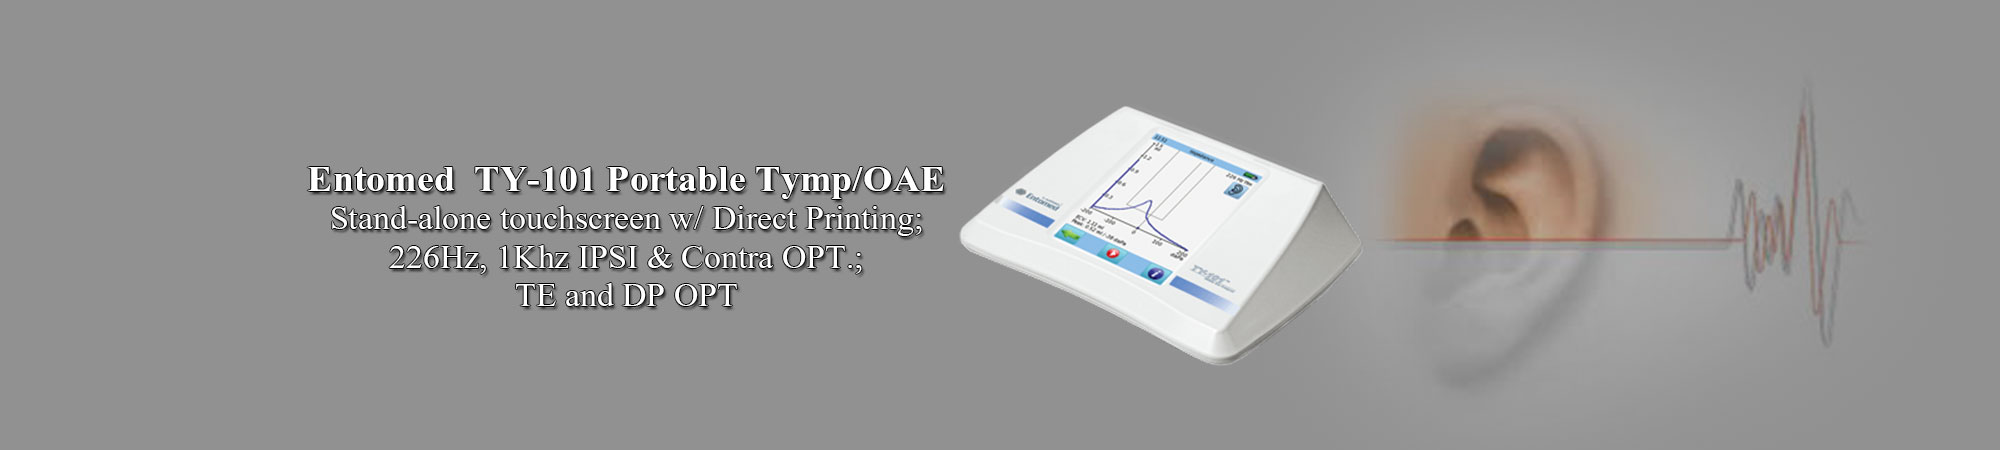 Entomed  TY-101 Portable Tymp/OAE